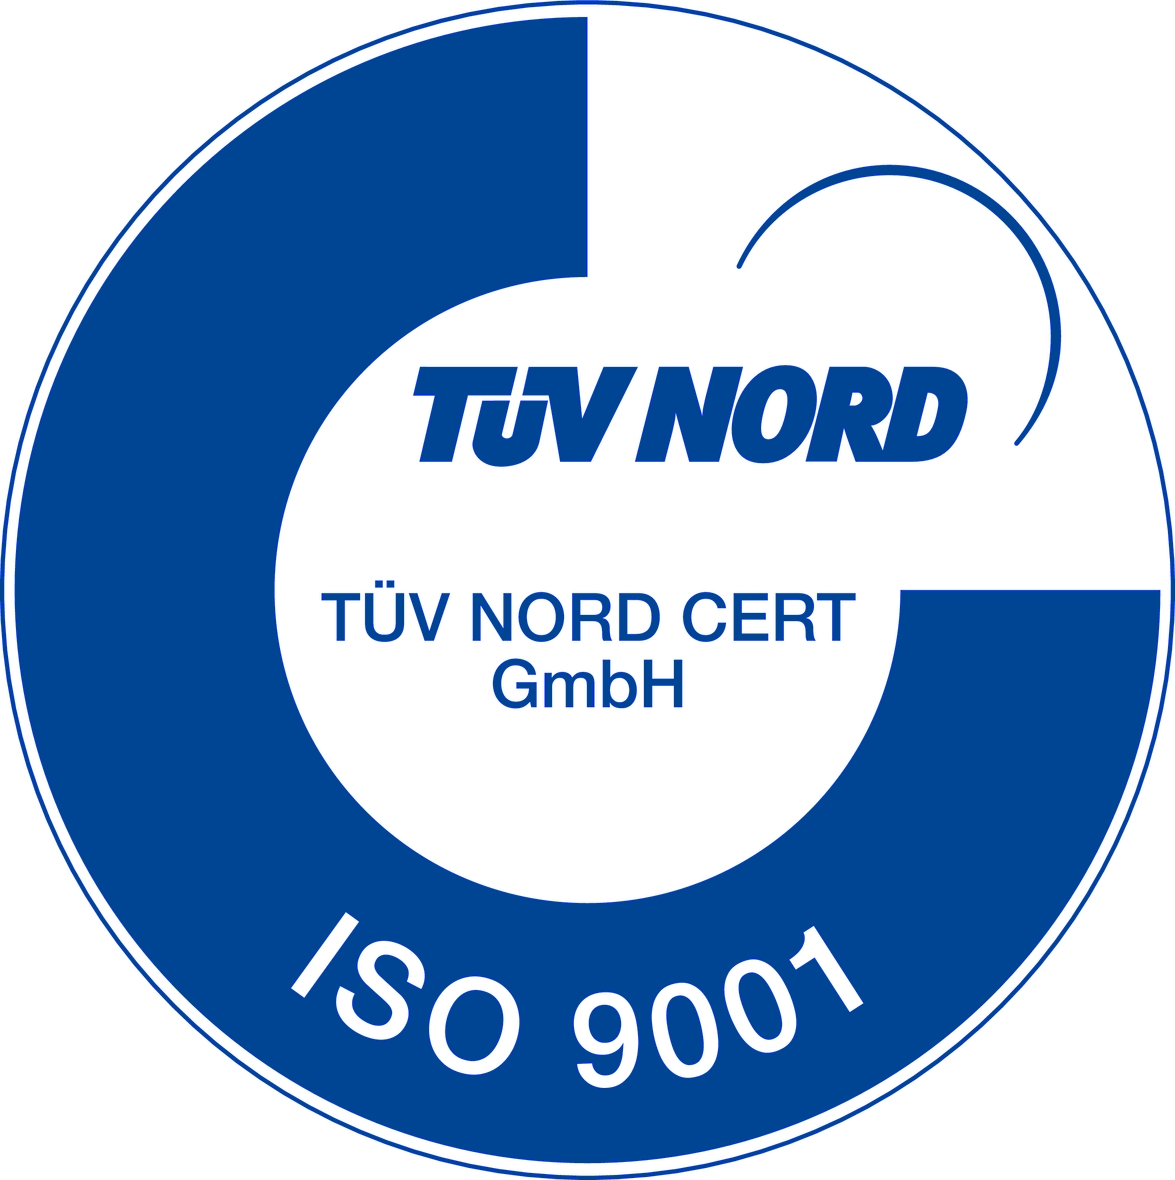 ISO 9001 CERTIFIED BY TUV NORD